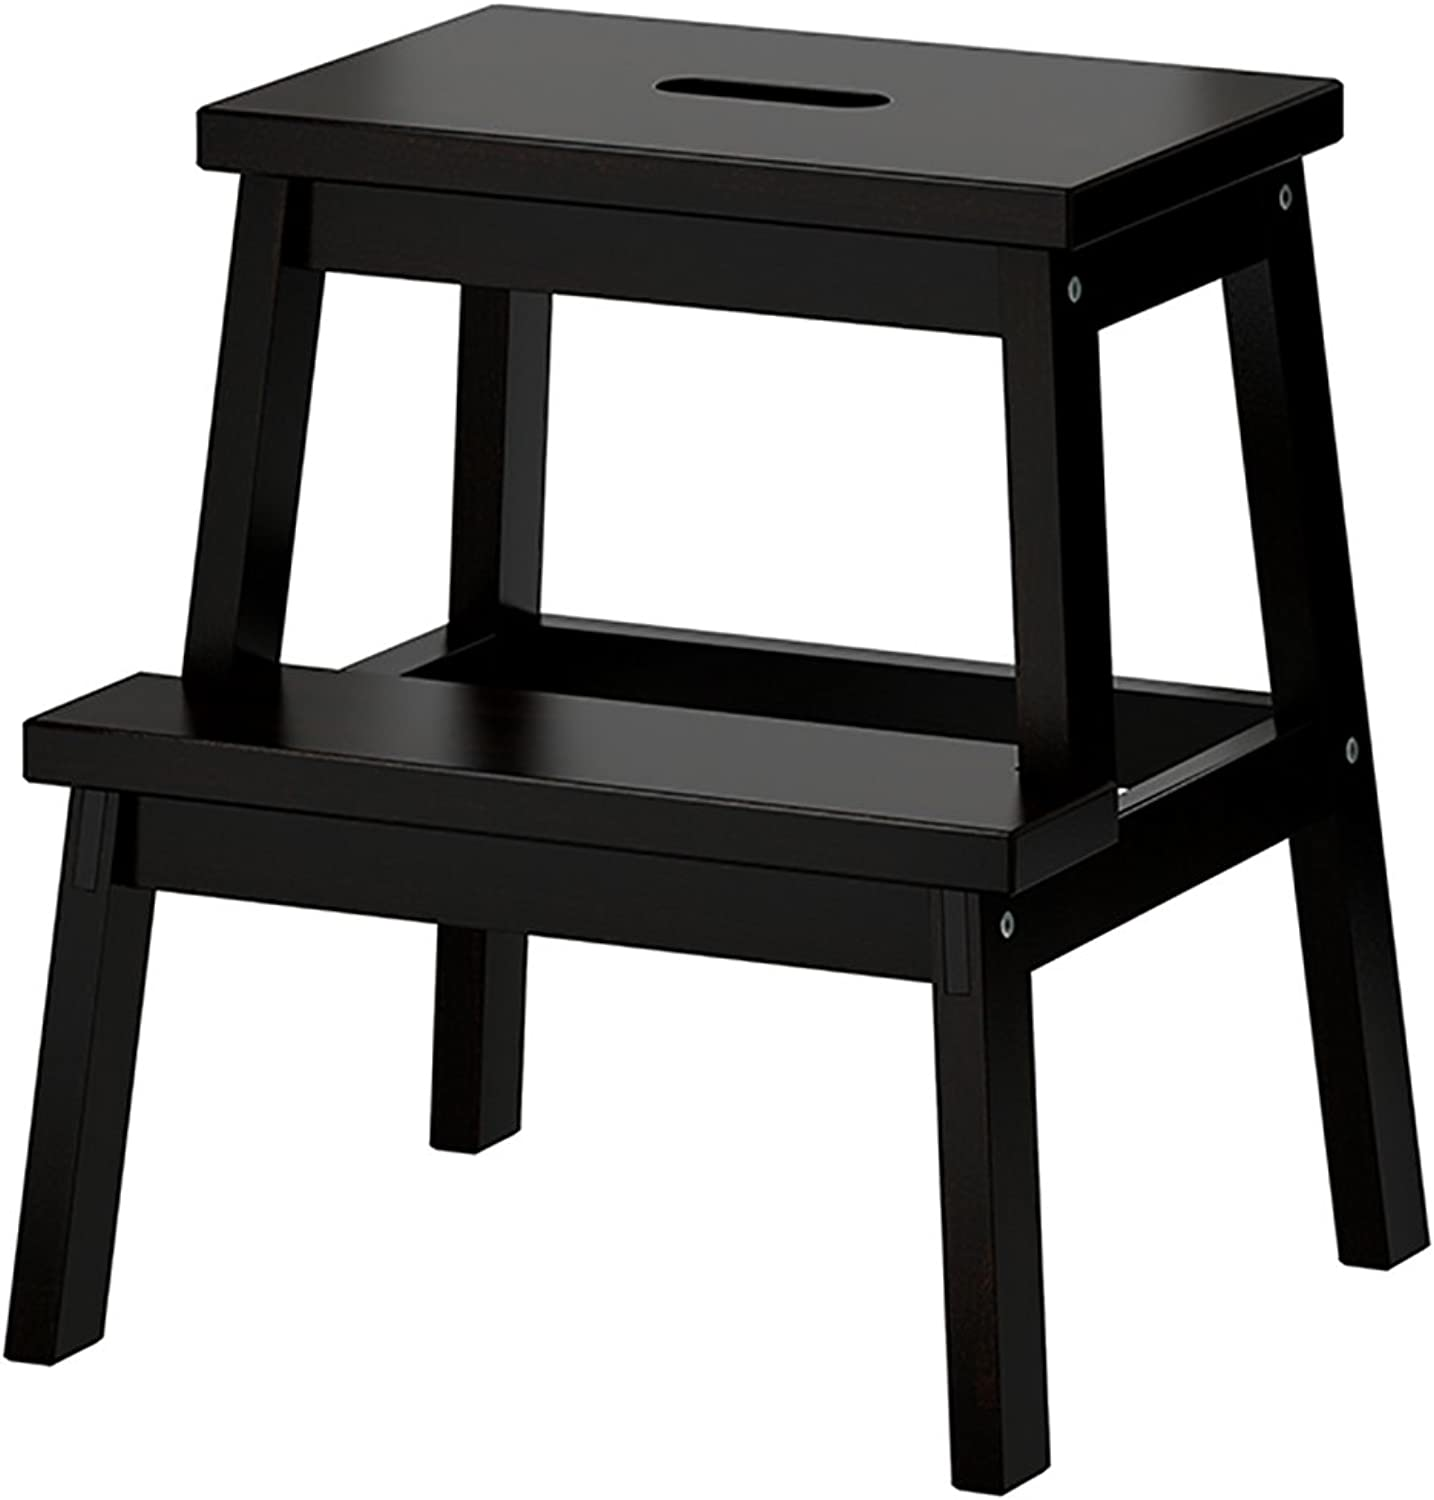 WUFENG Ladder Stool Dual-use Stool Step Stool Solid Wood Two Layers shoes Bench Two colors Optional 45x25x50cm ( color   Black )